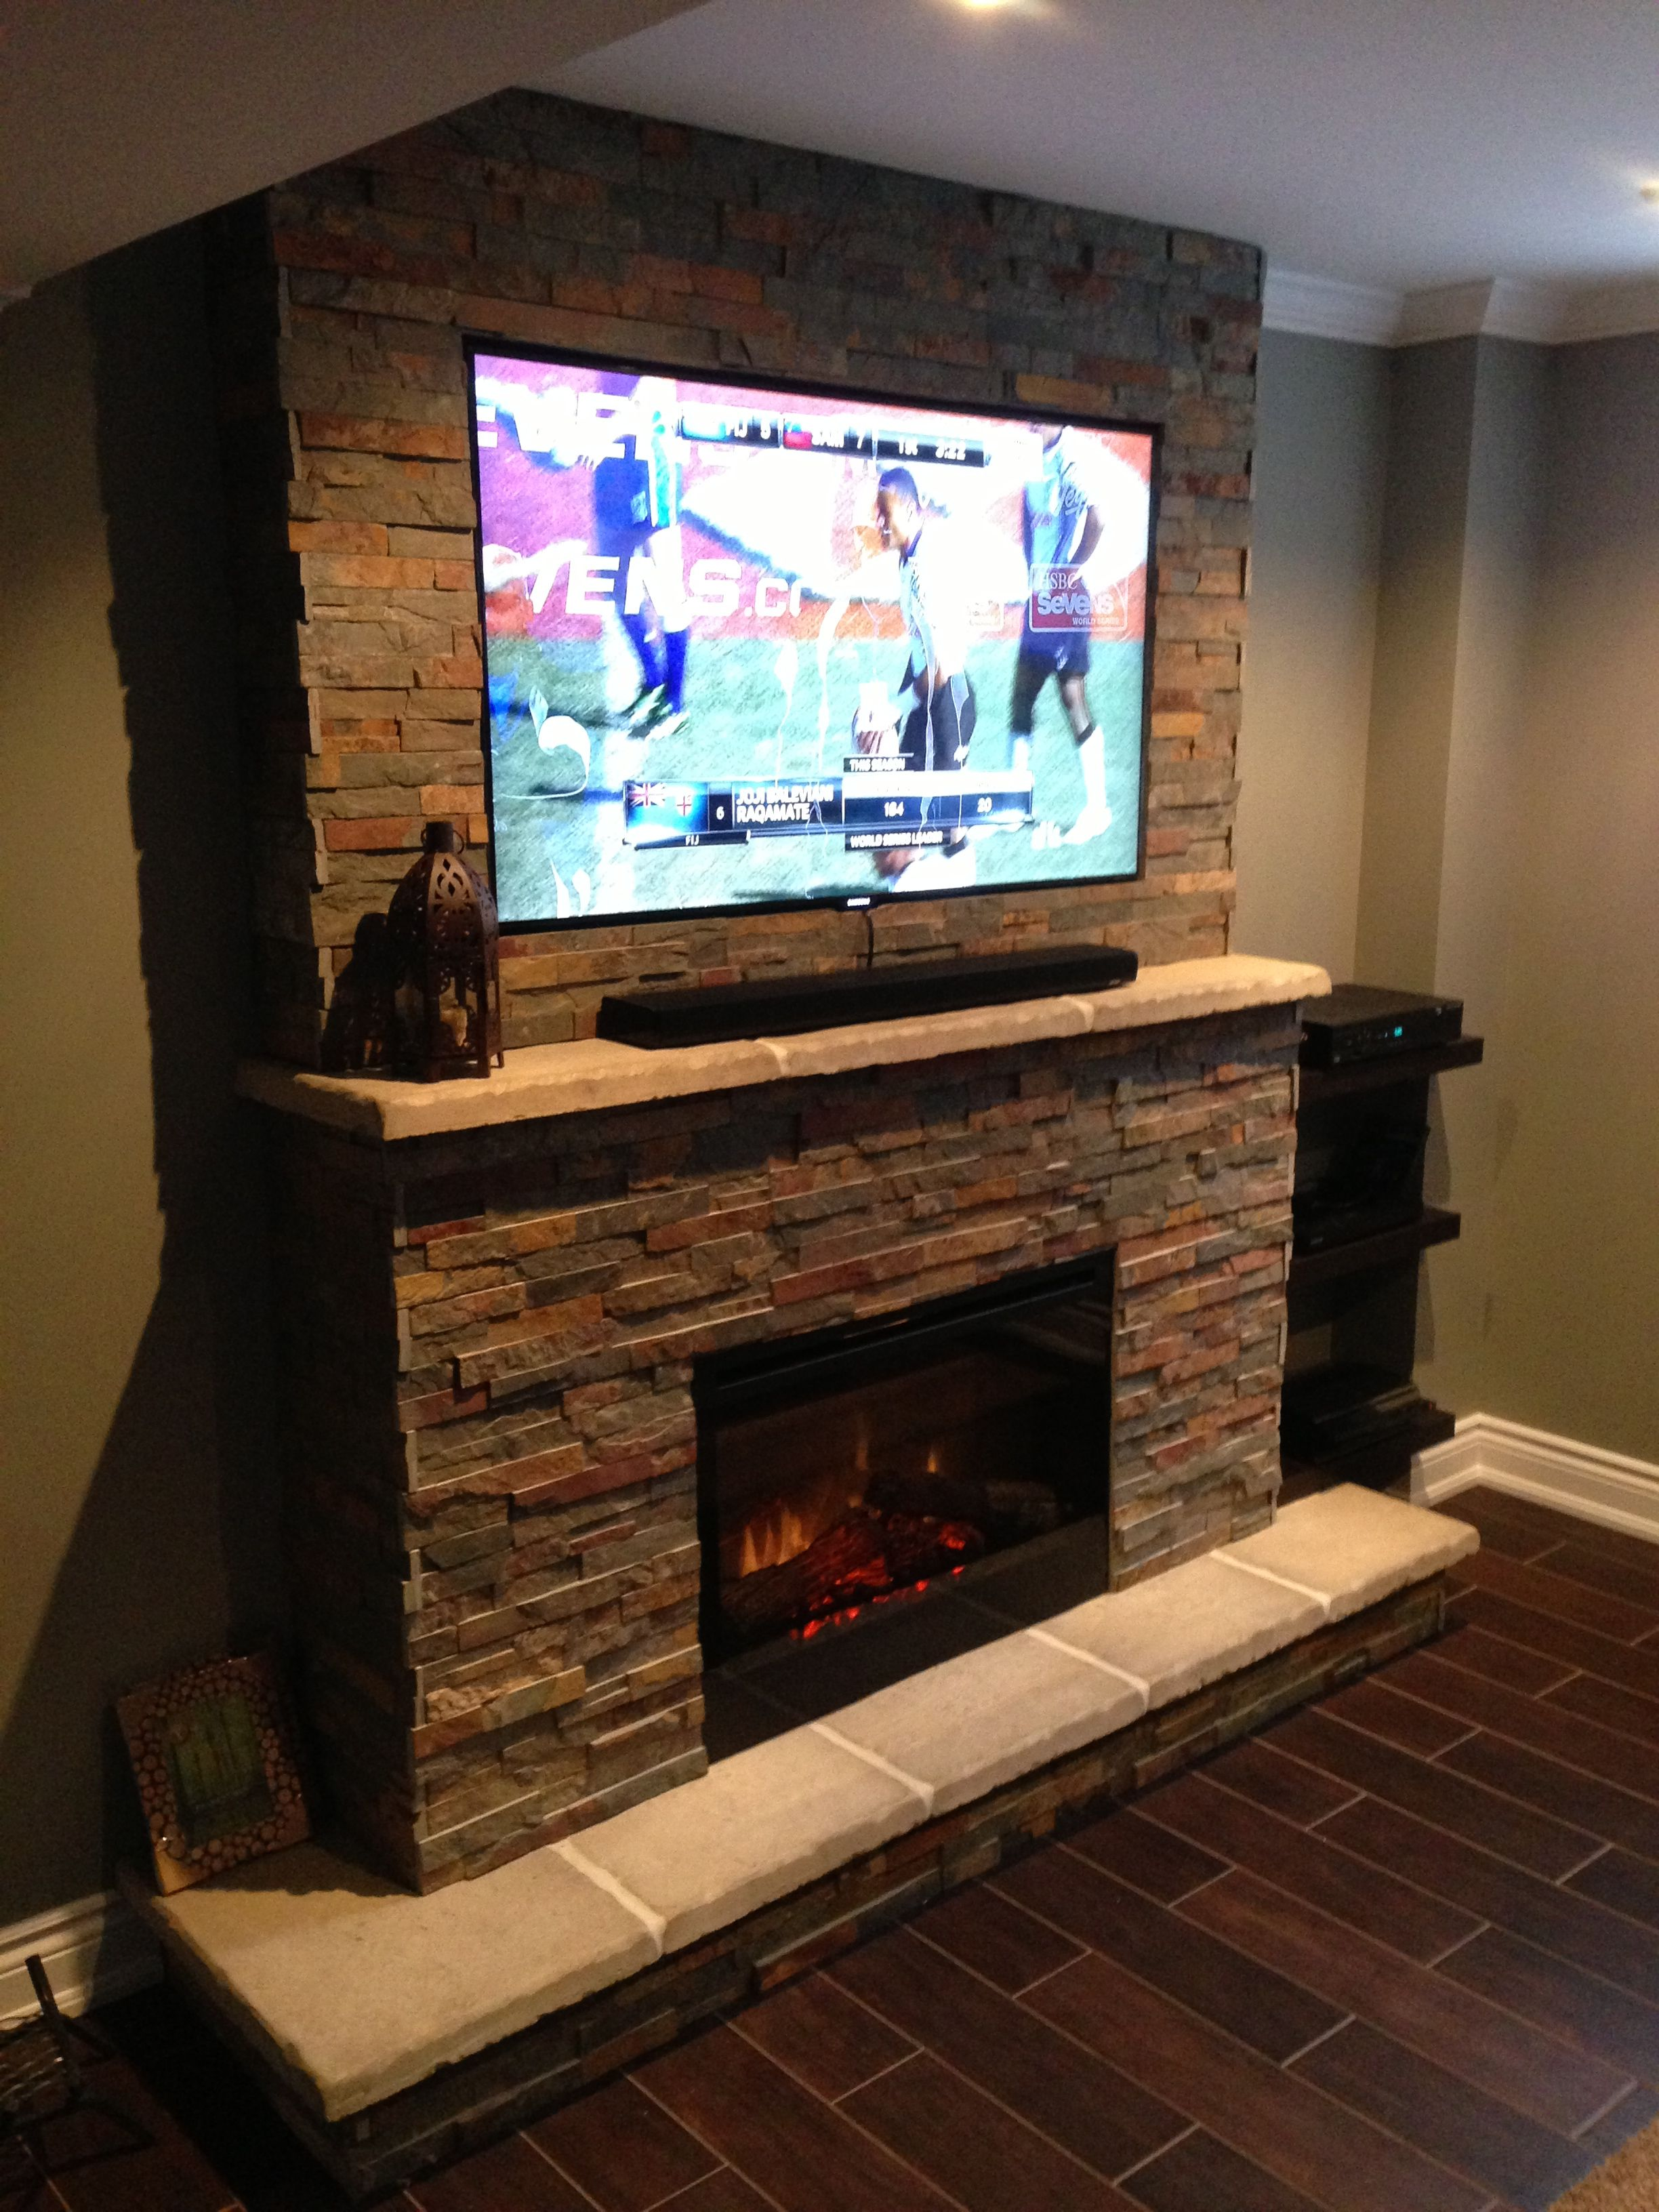 Fireplace Basement Television Samsung Mantle Hearth Dimplex Bose